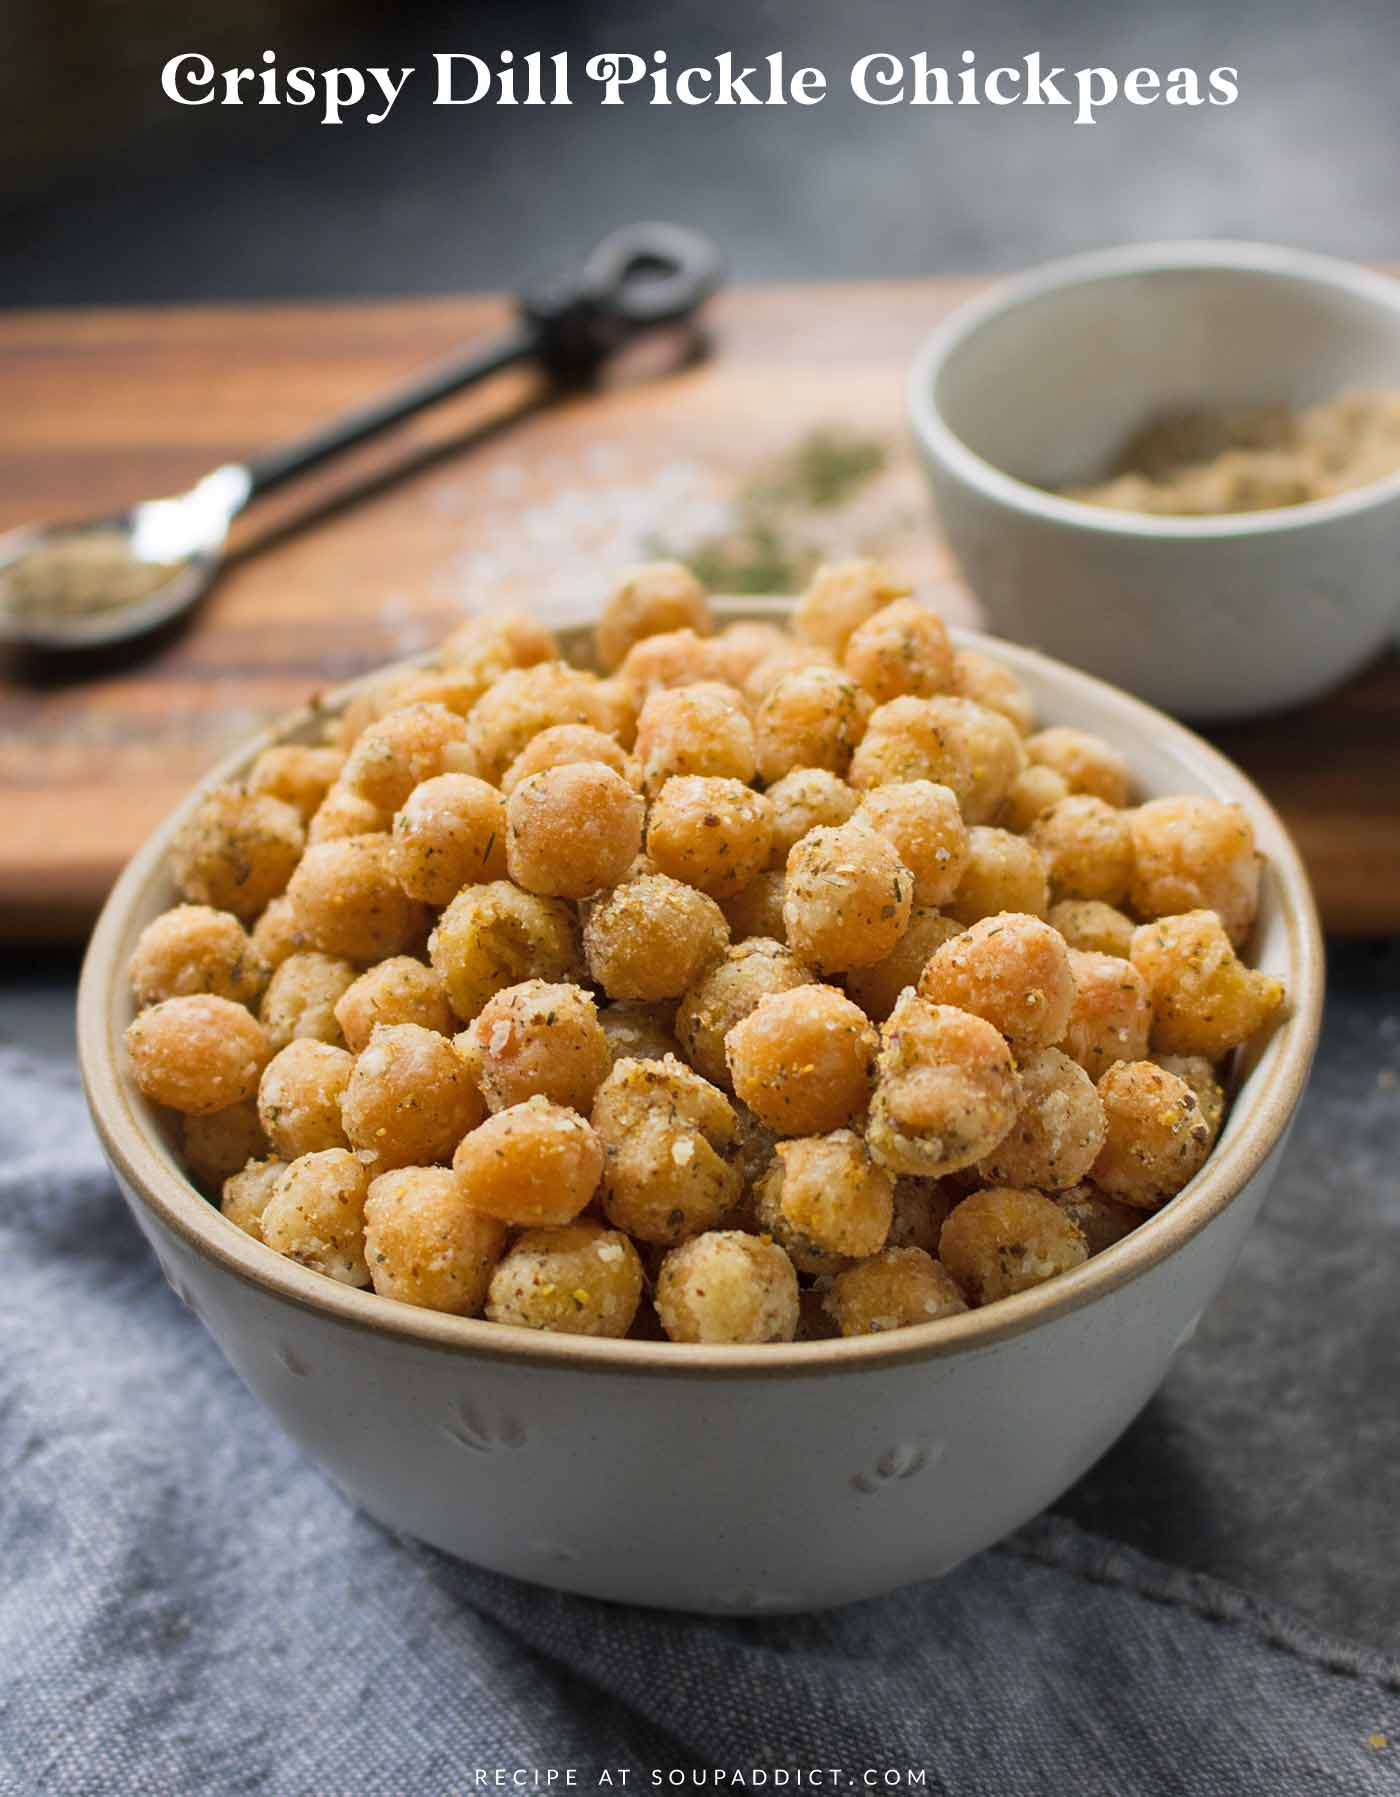 Crispy Dill Pickle Chickpeas in a serving bowl